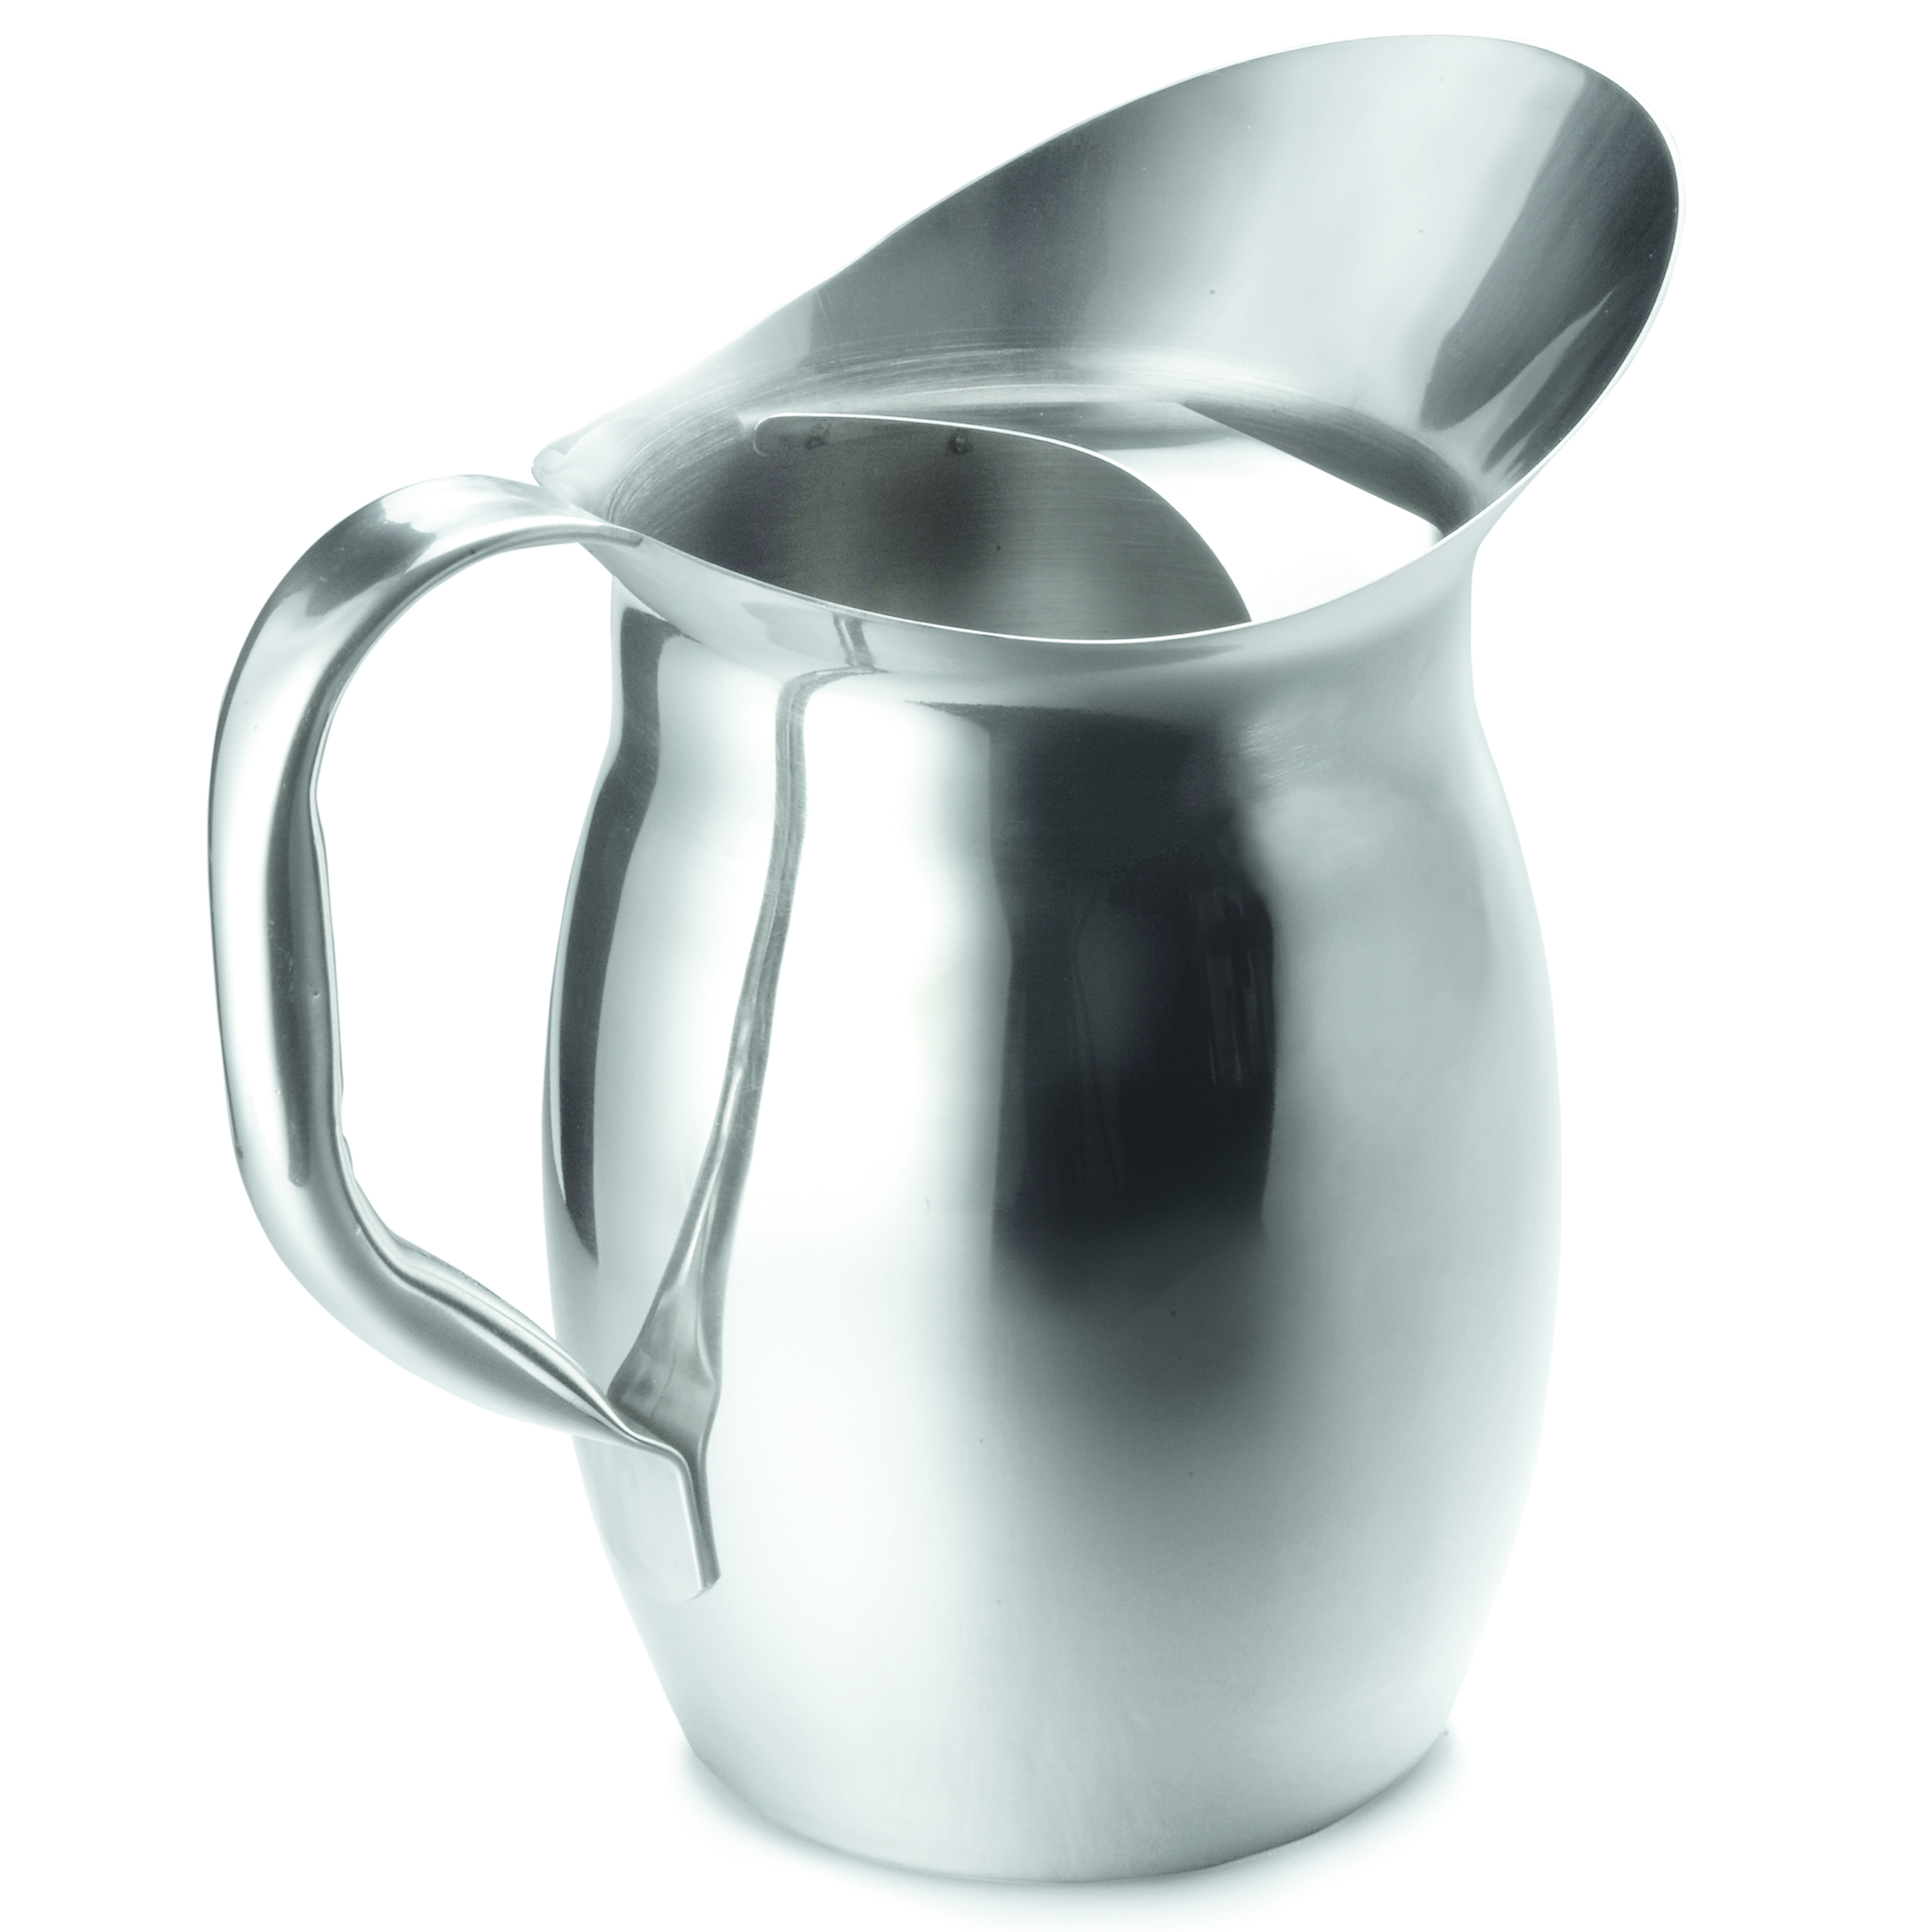 TableCraft Products 300 beverage pitchers & servers